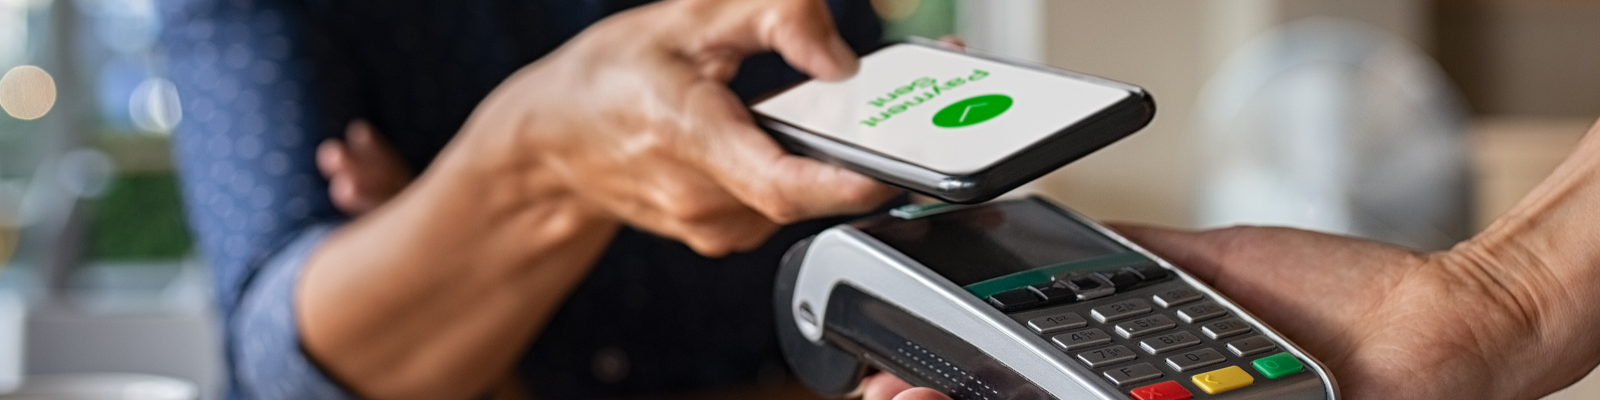 Customer paying with mobile wallet